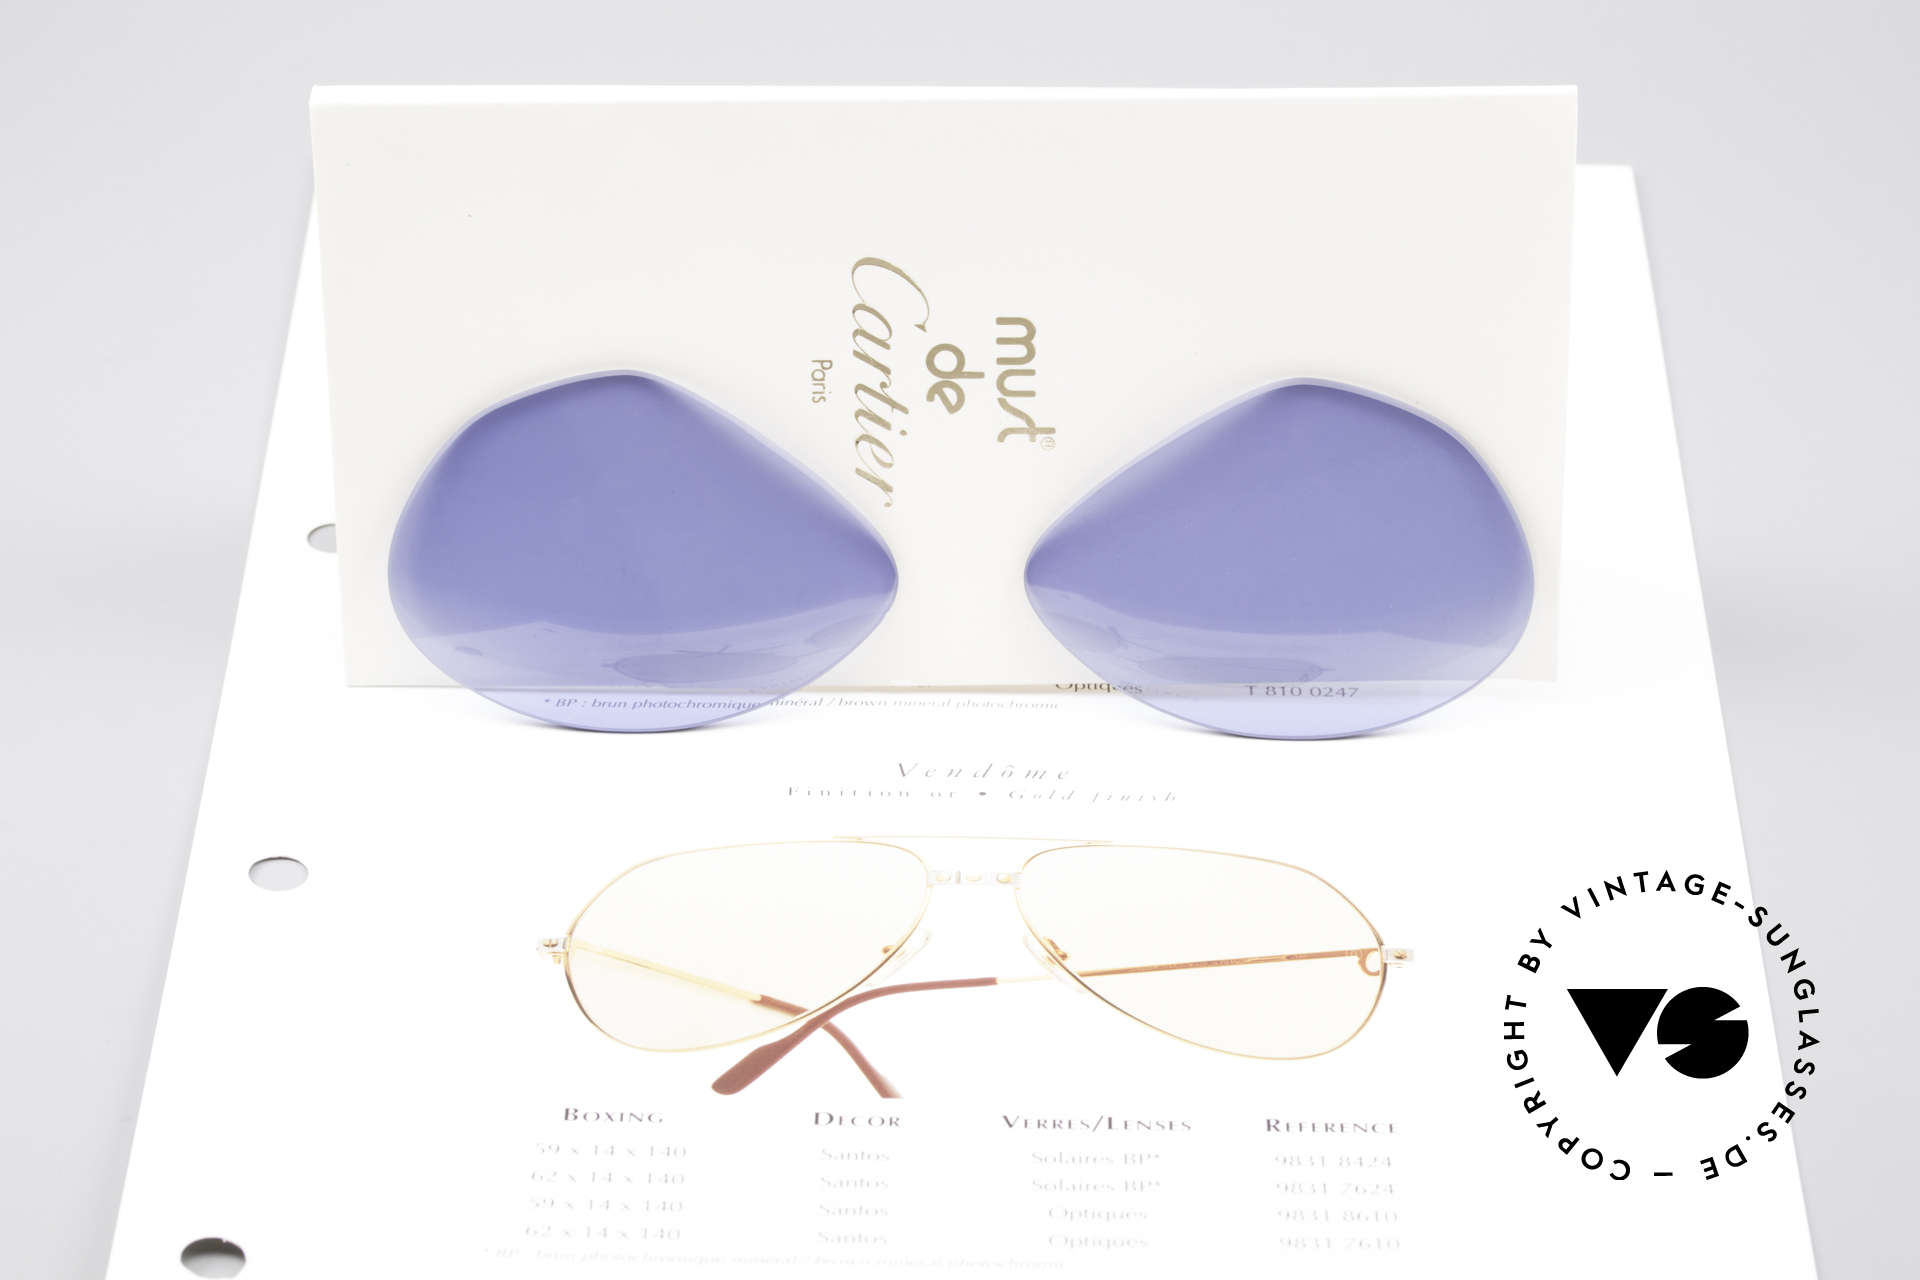 Cartier Vendome Lenses - L Navy Blue Sun Lenses, unicolor tinted in navy-blue (rare & really eye-catching), Made for Men